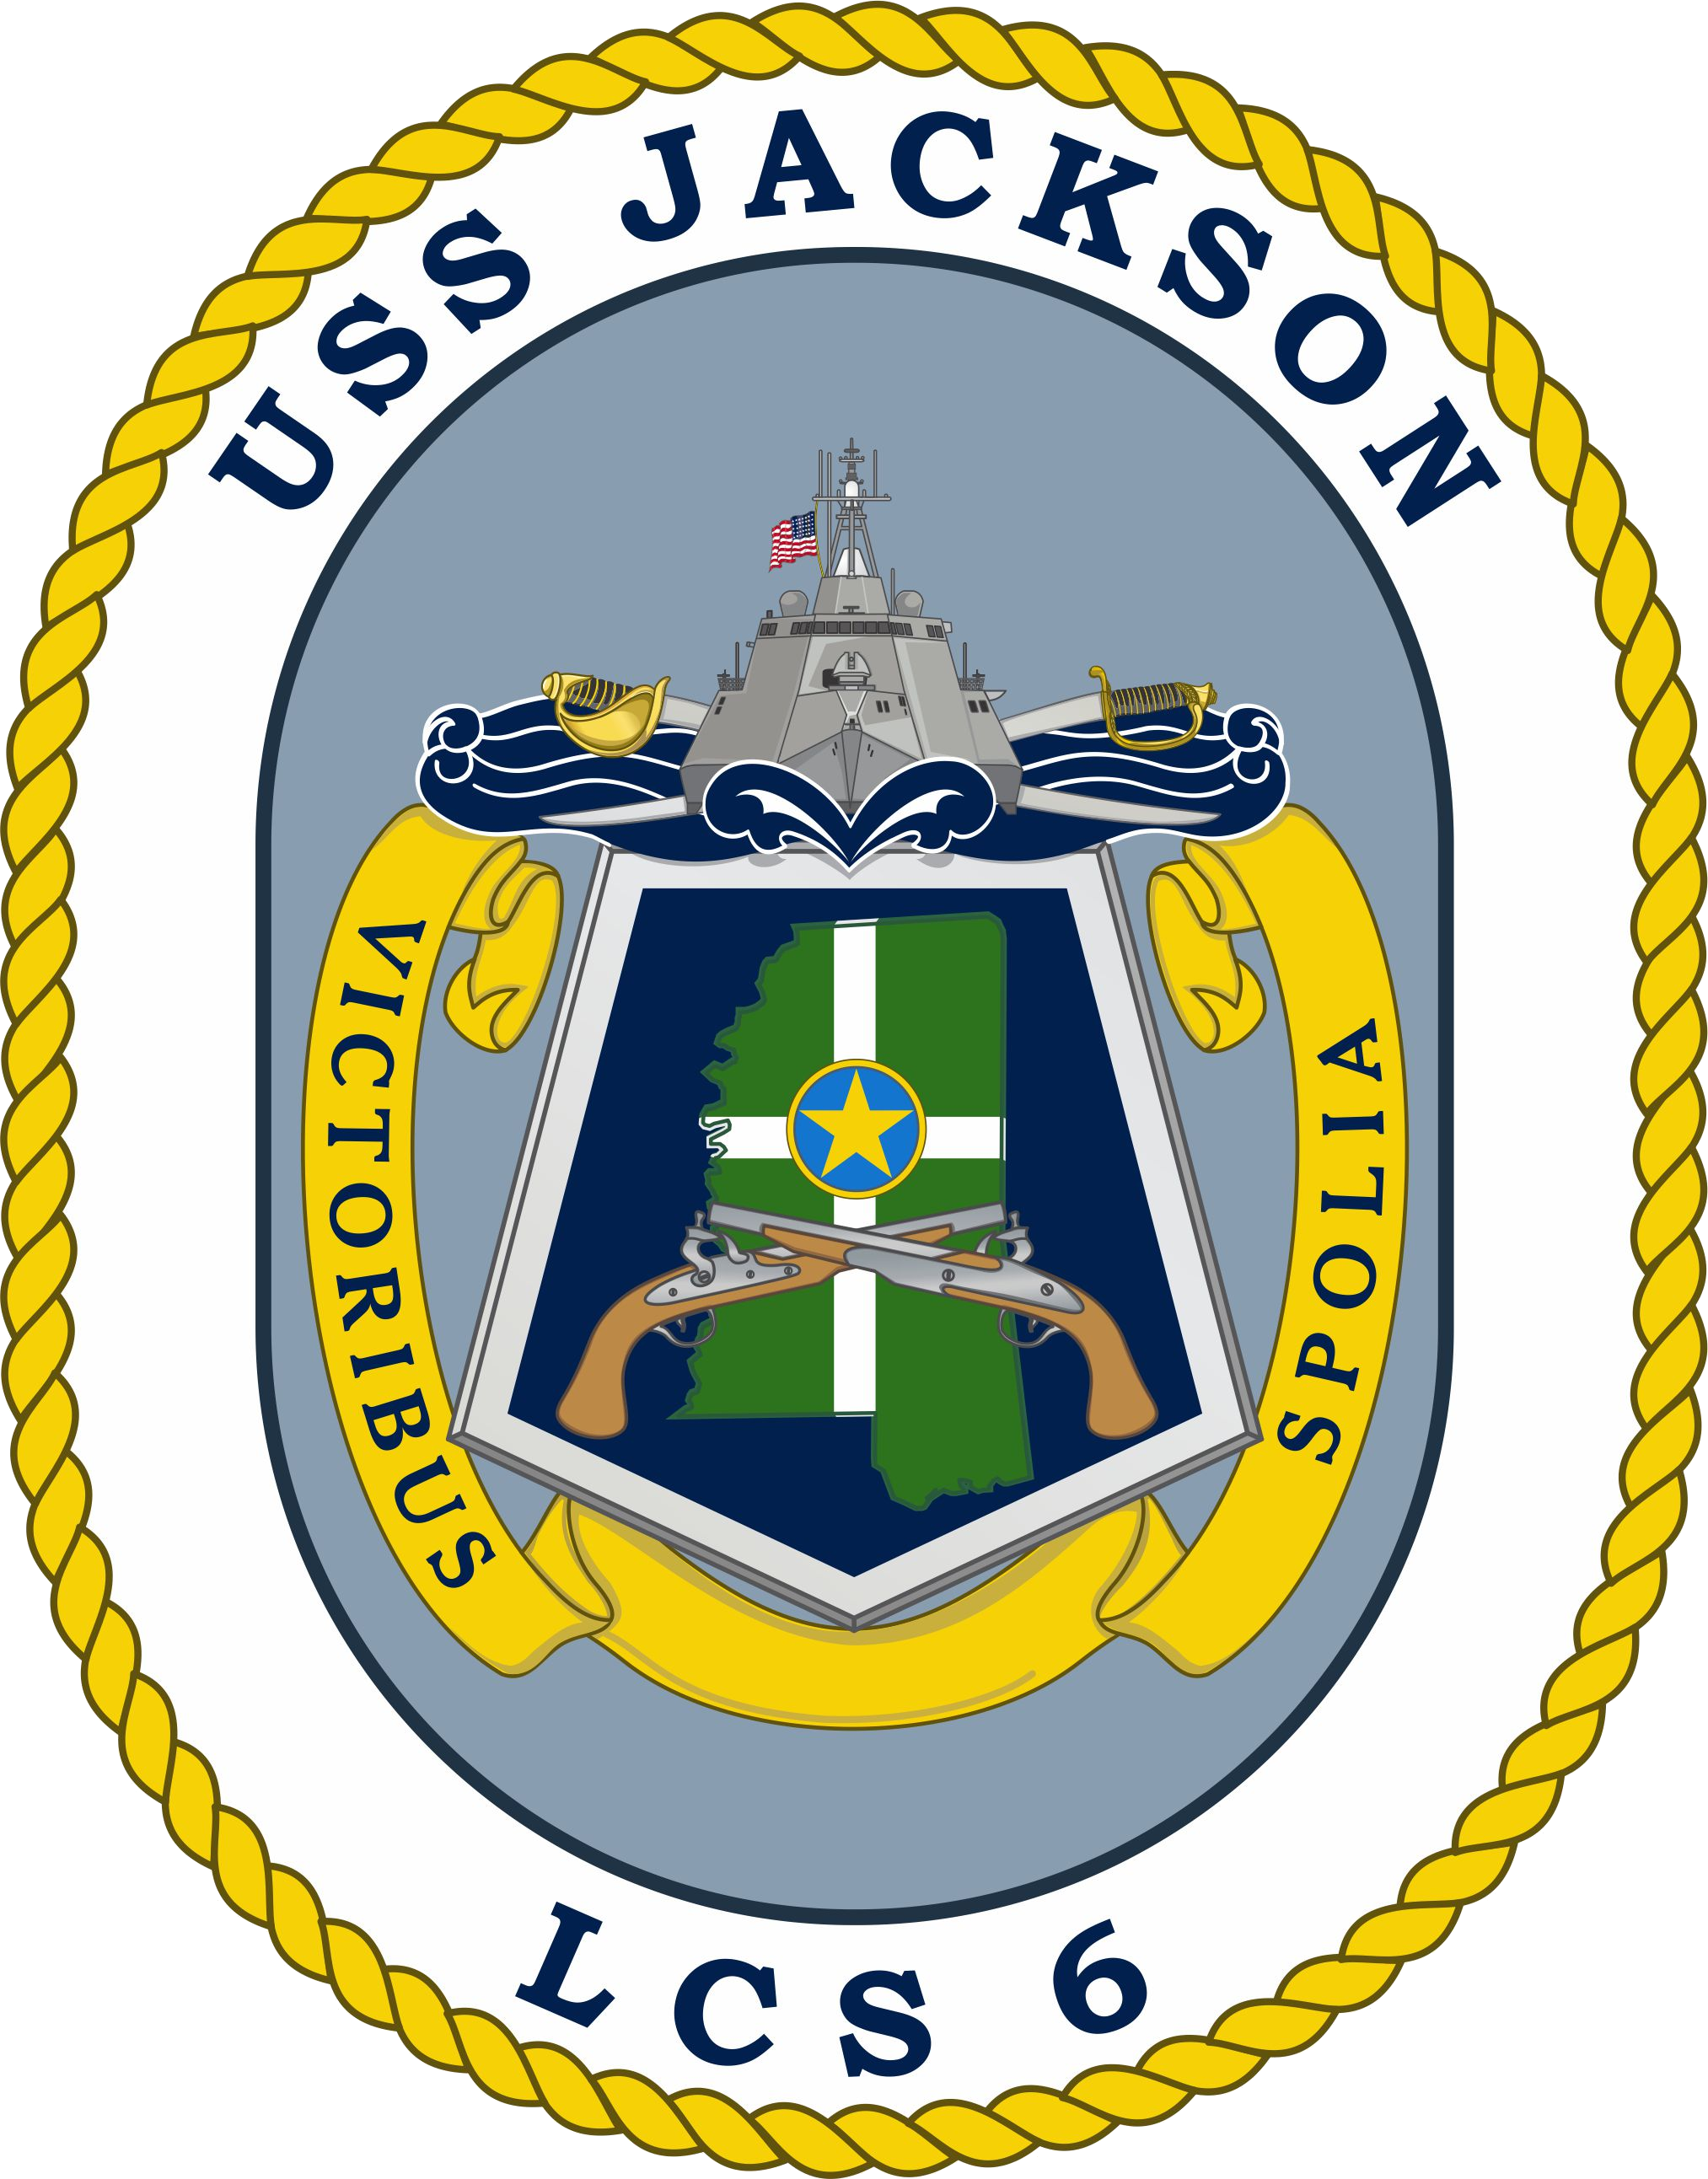 Jackson state crest png. File uss lcs wikimedia